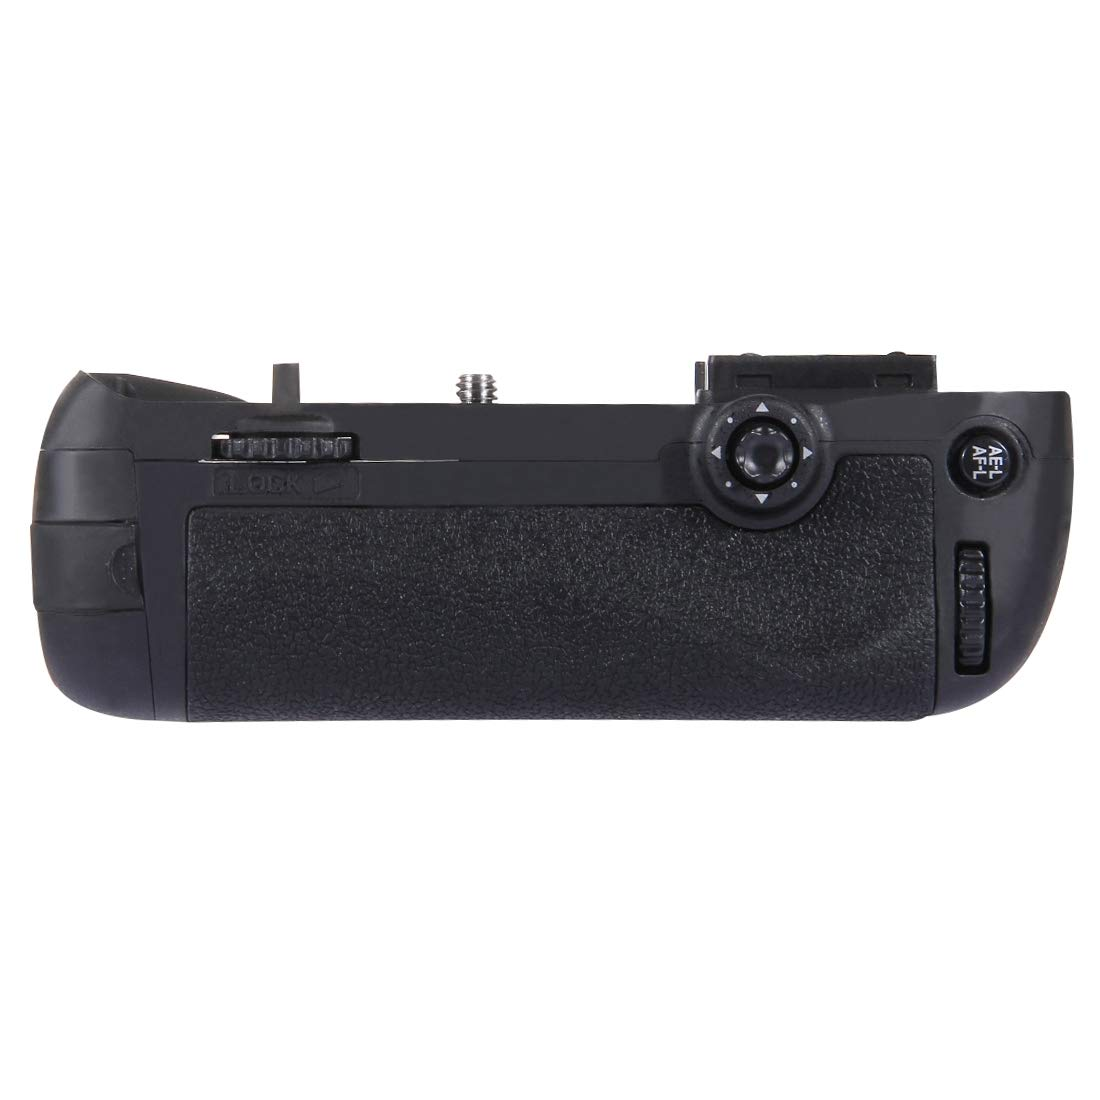 CAOMING Vertical Camera Battery Grip for Nikon D7100 /D7200 Digital SLR Camera Durable by CAOMING